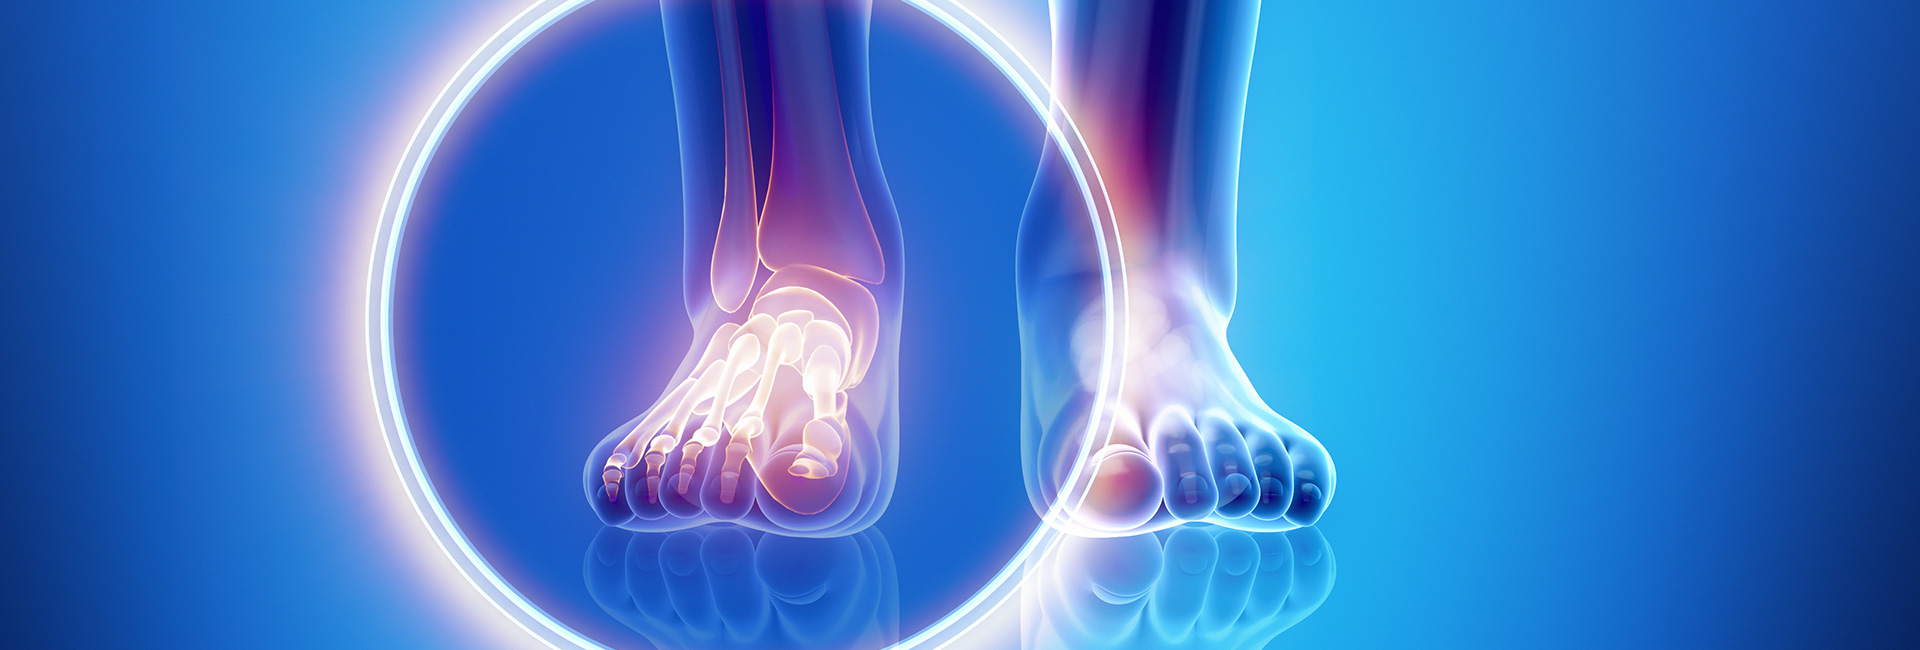 Foot-Ankle-Lower-Leg-Plantar-Fascia-Pain---Physical-Therapy